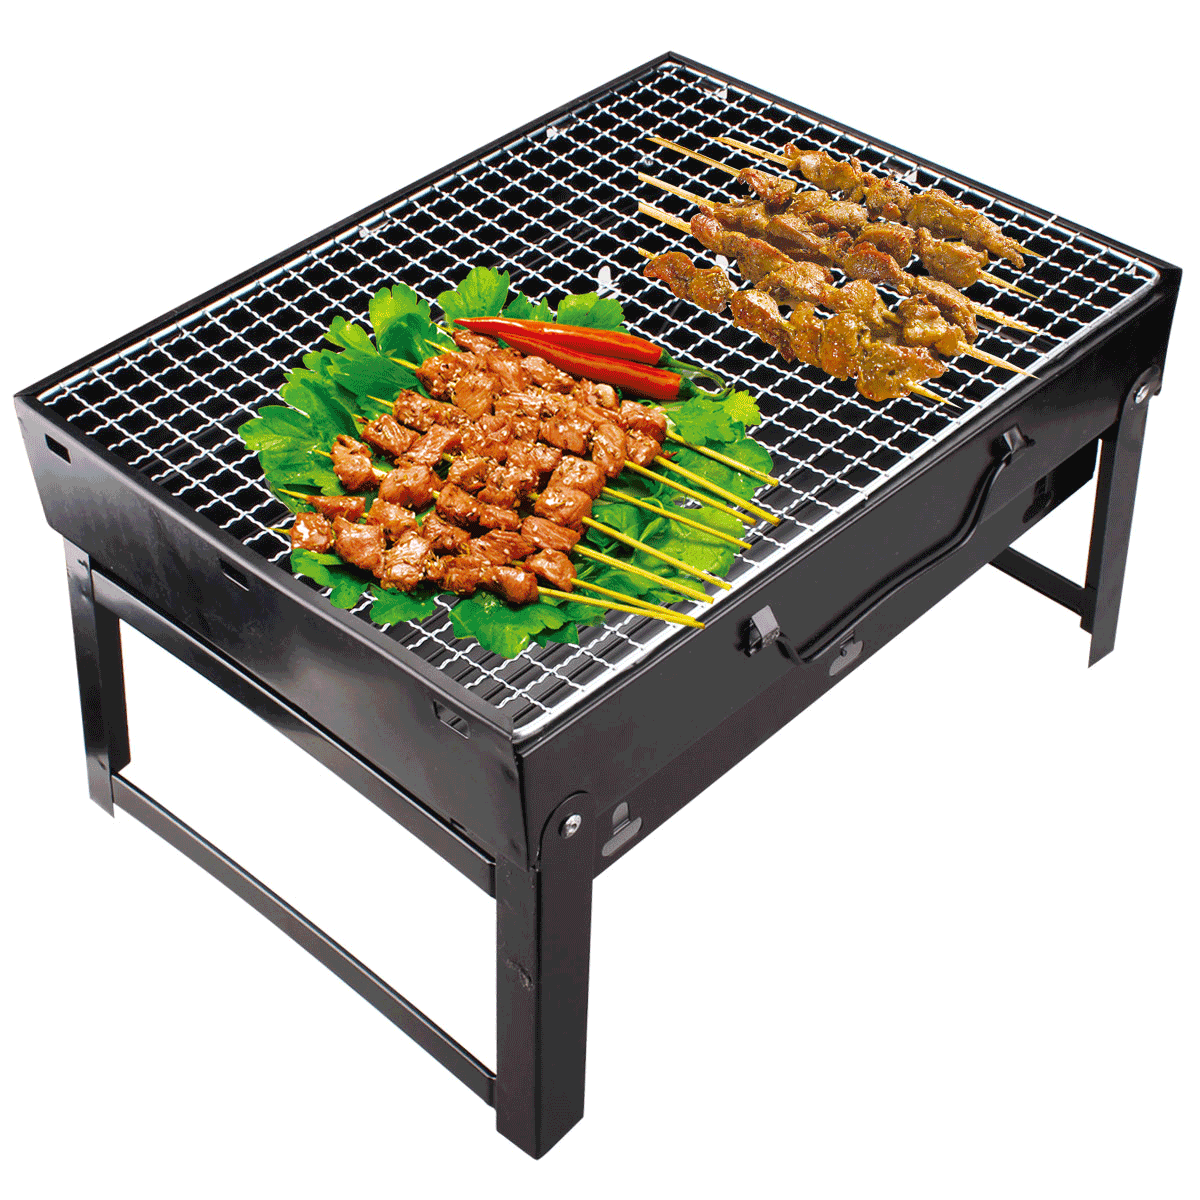 Luwint shipping black steel folding stainless steel grill home outdoor barbecue grill can be folded and easy to they carry